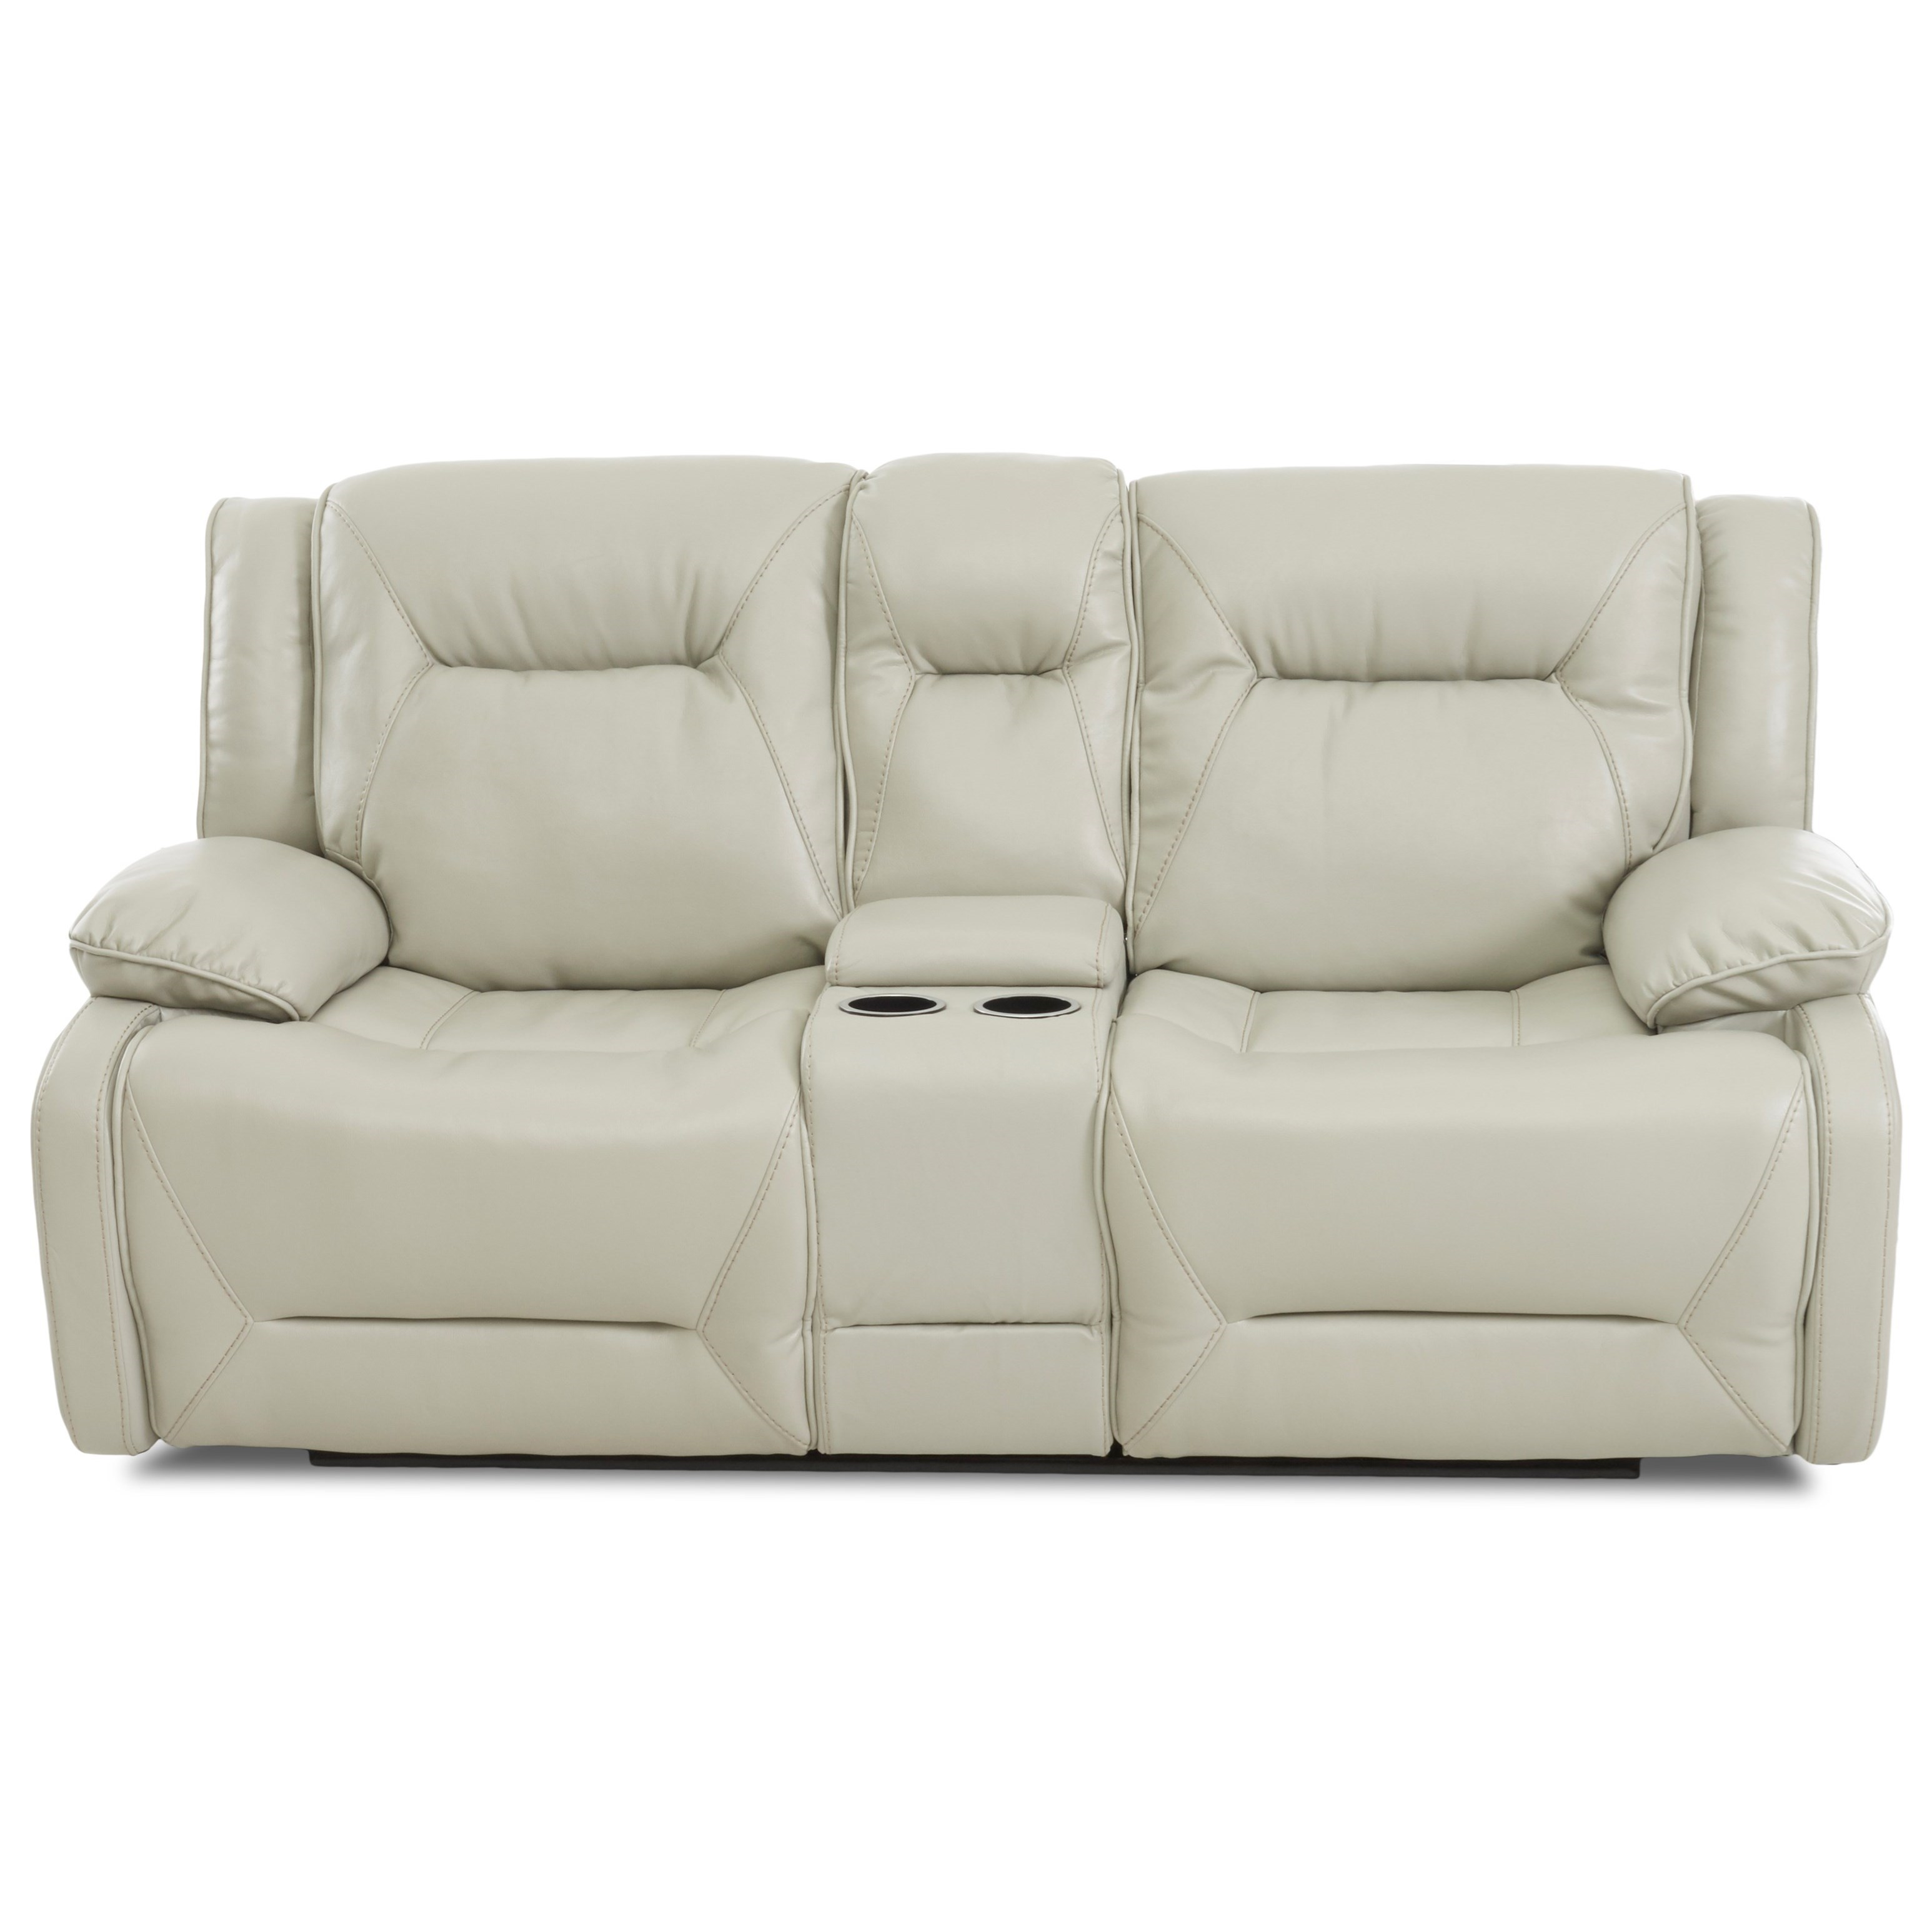 Dansby Power Reclining Console Loveseat by Klaussner International at Northeast Factory Direct